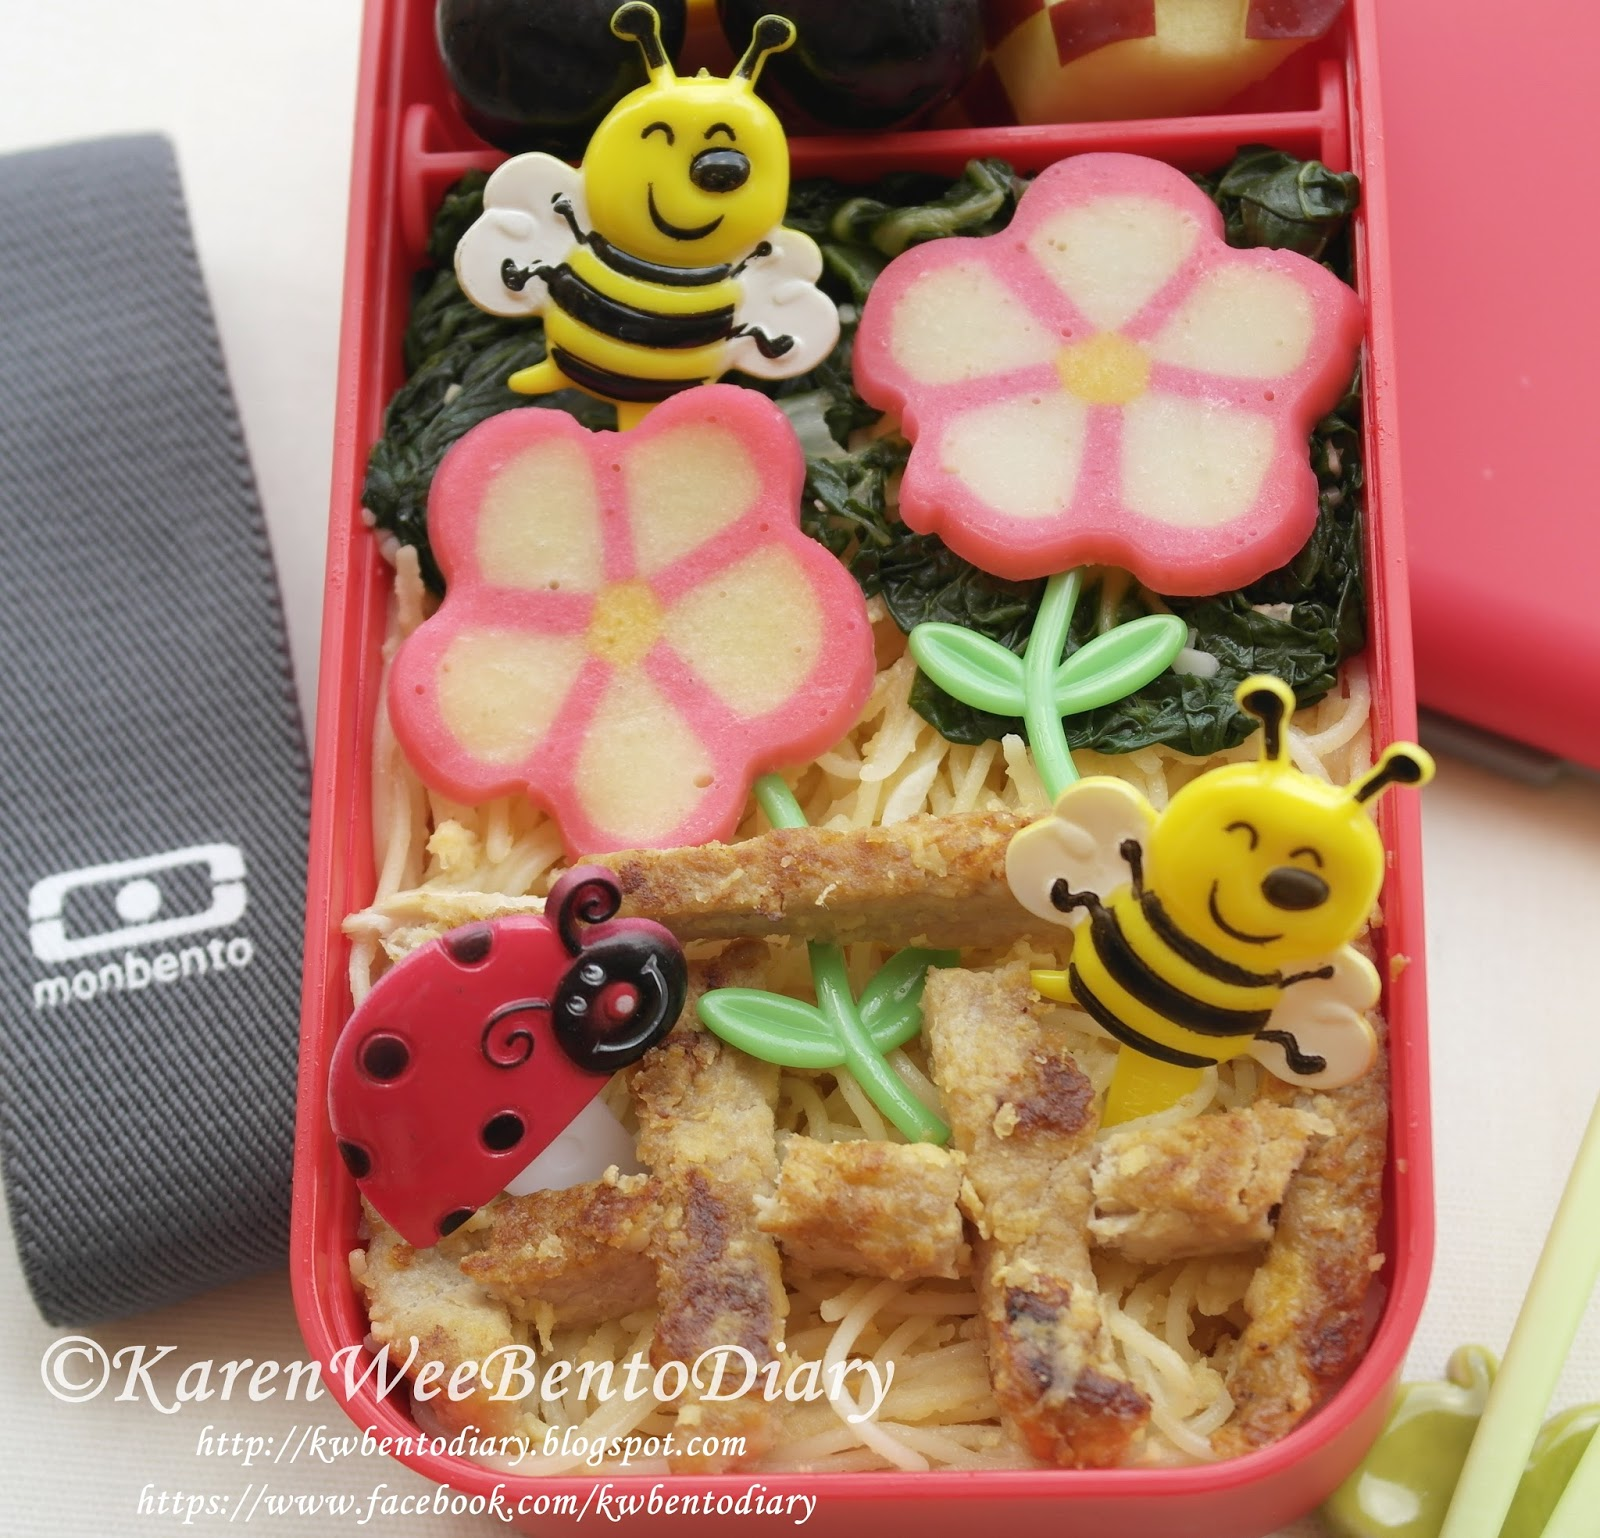 karenwee 39 s bento diary bento sept06 happy garden lunch bento. Black Bedroom Furniture Sets. Home Design Ideas